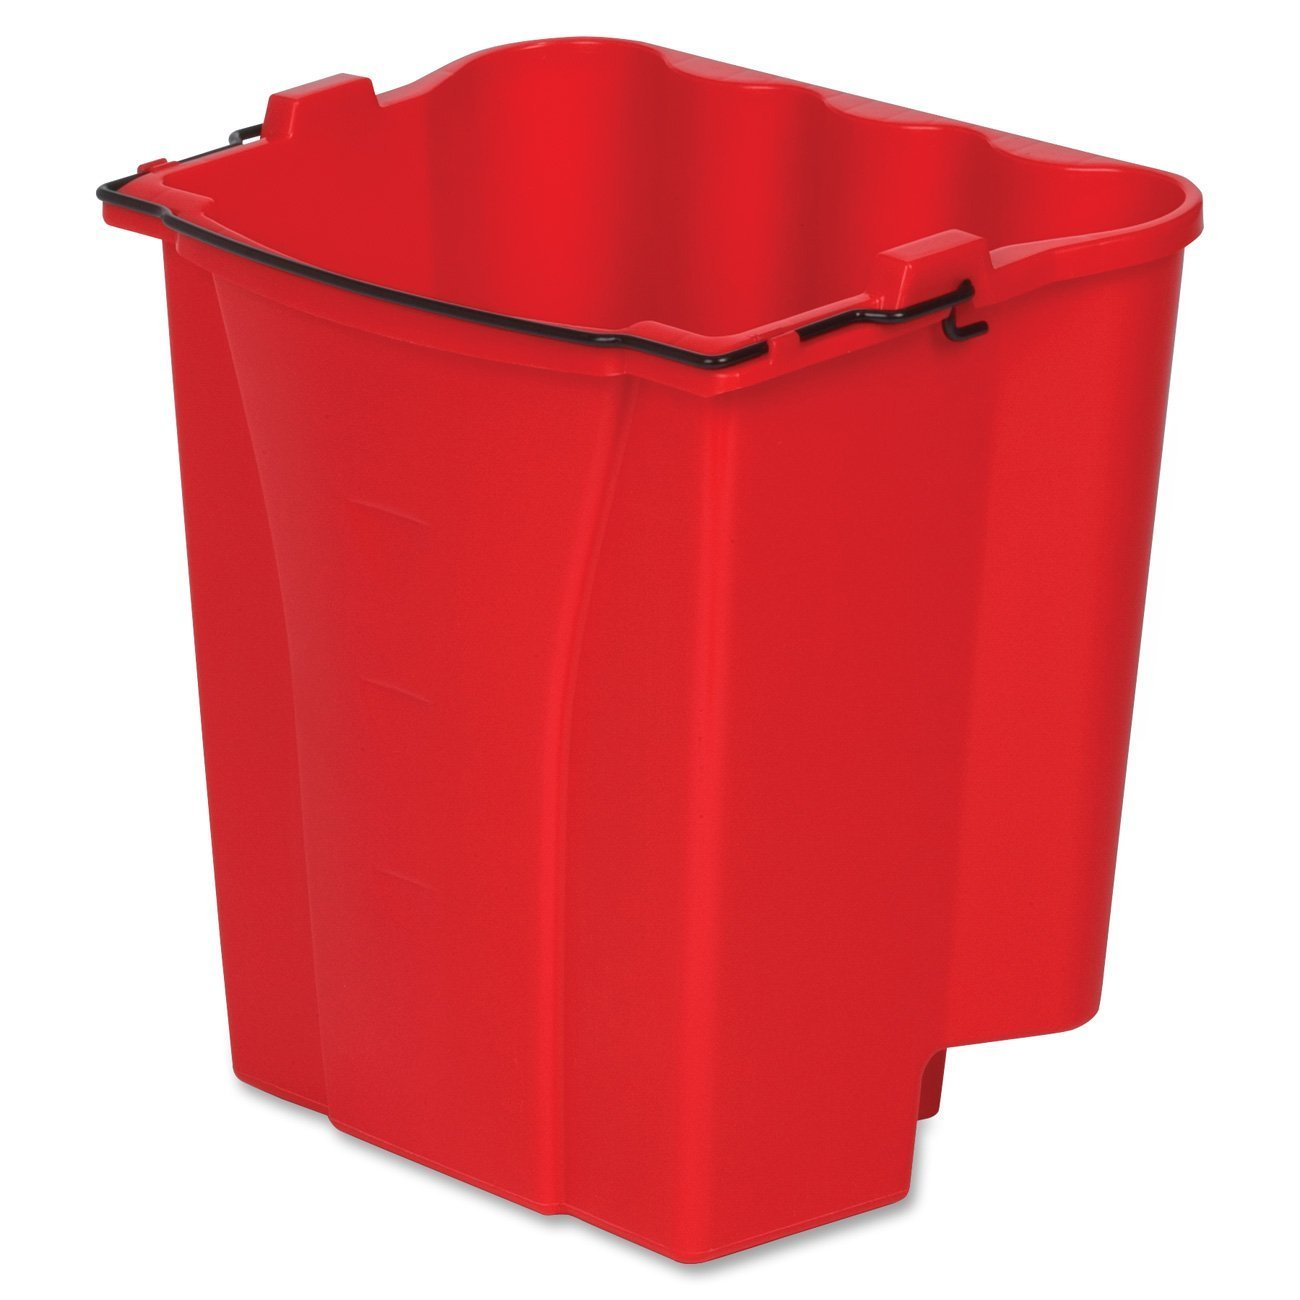 Rubbermaid Commercial 18qt Dirty Water Bucket for WaveBrake Wringer - Red FG9C7400RED